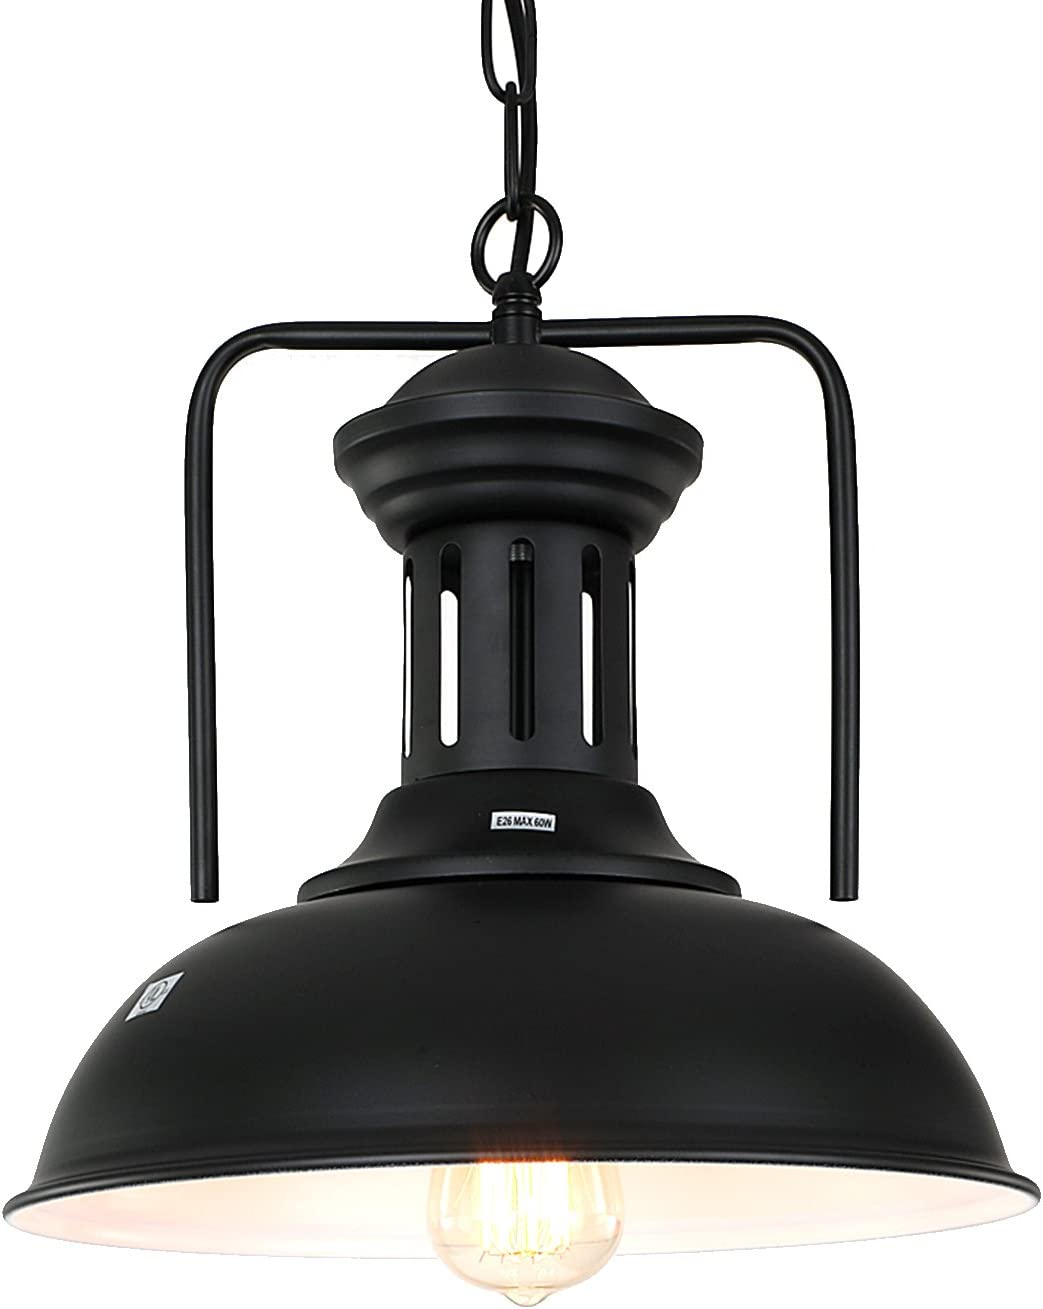 Pauwer Pendant Light Industrial Metal Barn Pendant Light with Dome Bowl Shade Nautical Pendant light with Adjustable Chain